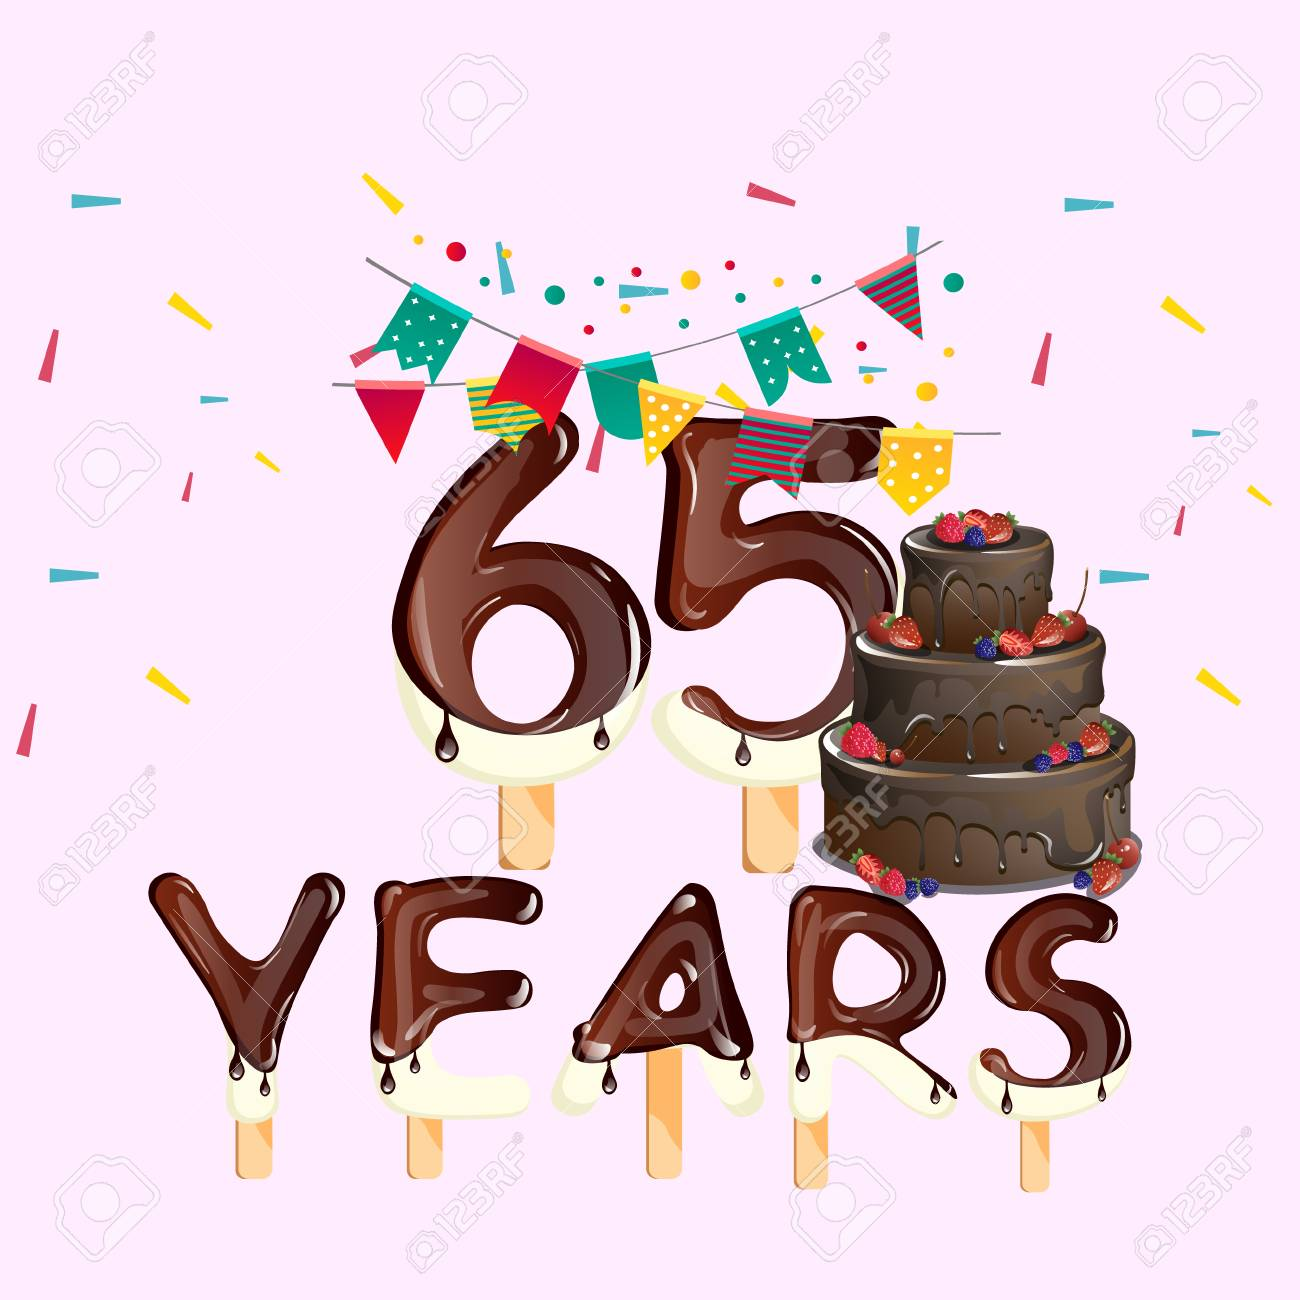 65 Years Happy Birthday Card Stock Vector